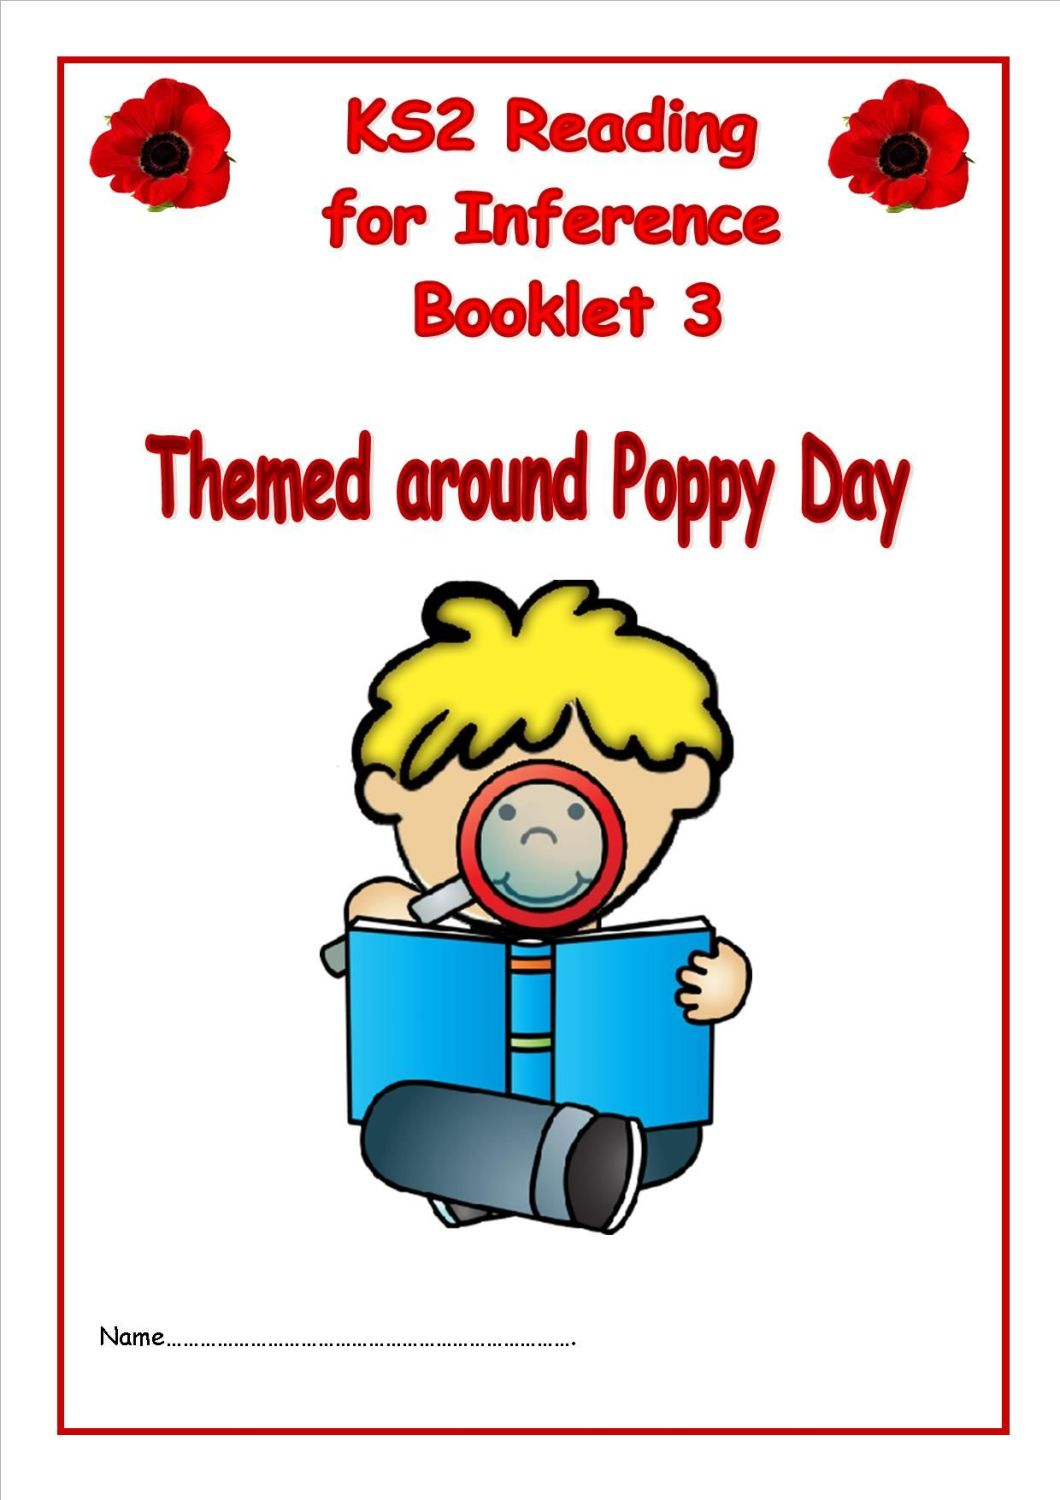 KS2 Reading for Inference Booklet 3 (themed around Remembrance Day)